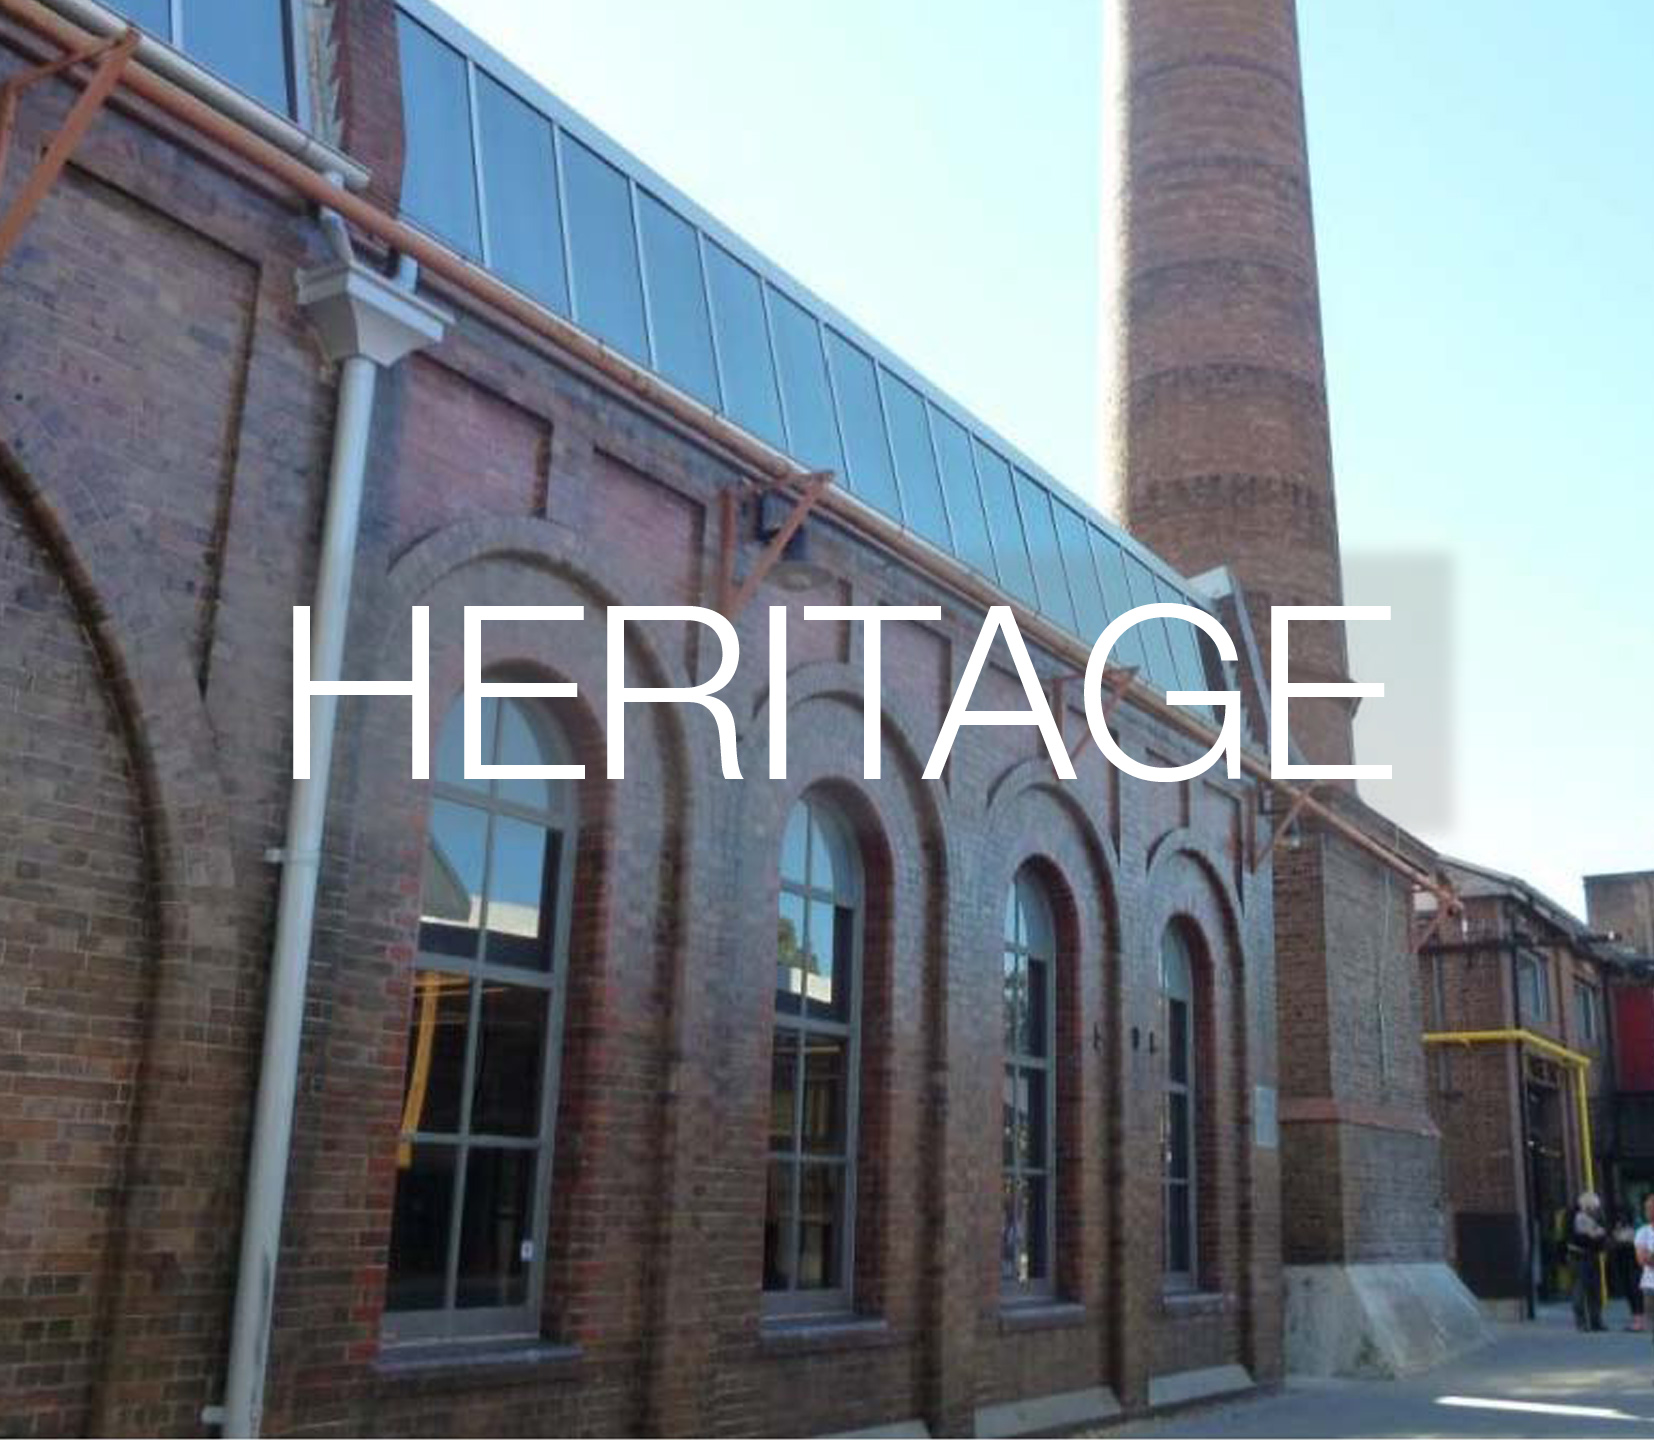 http://www.cityplan.com.au/heritage-projects/